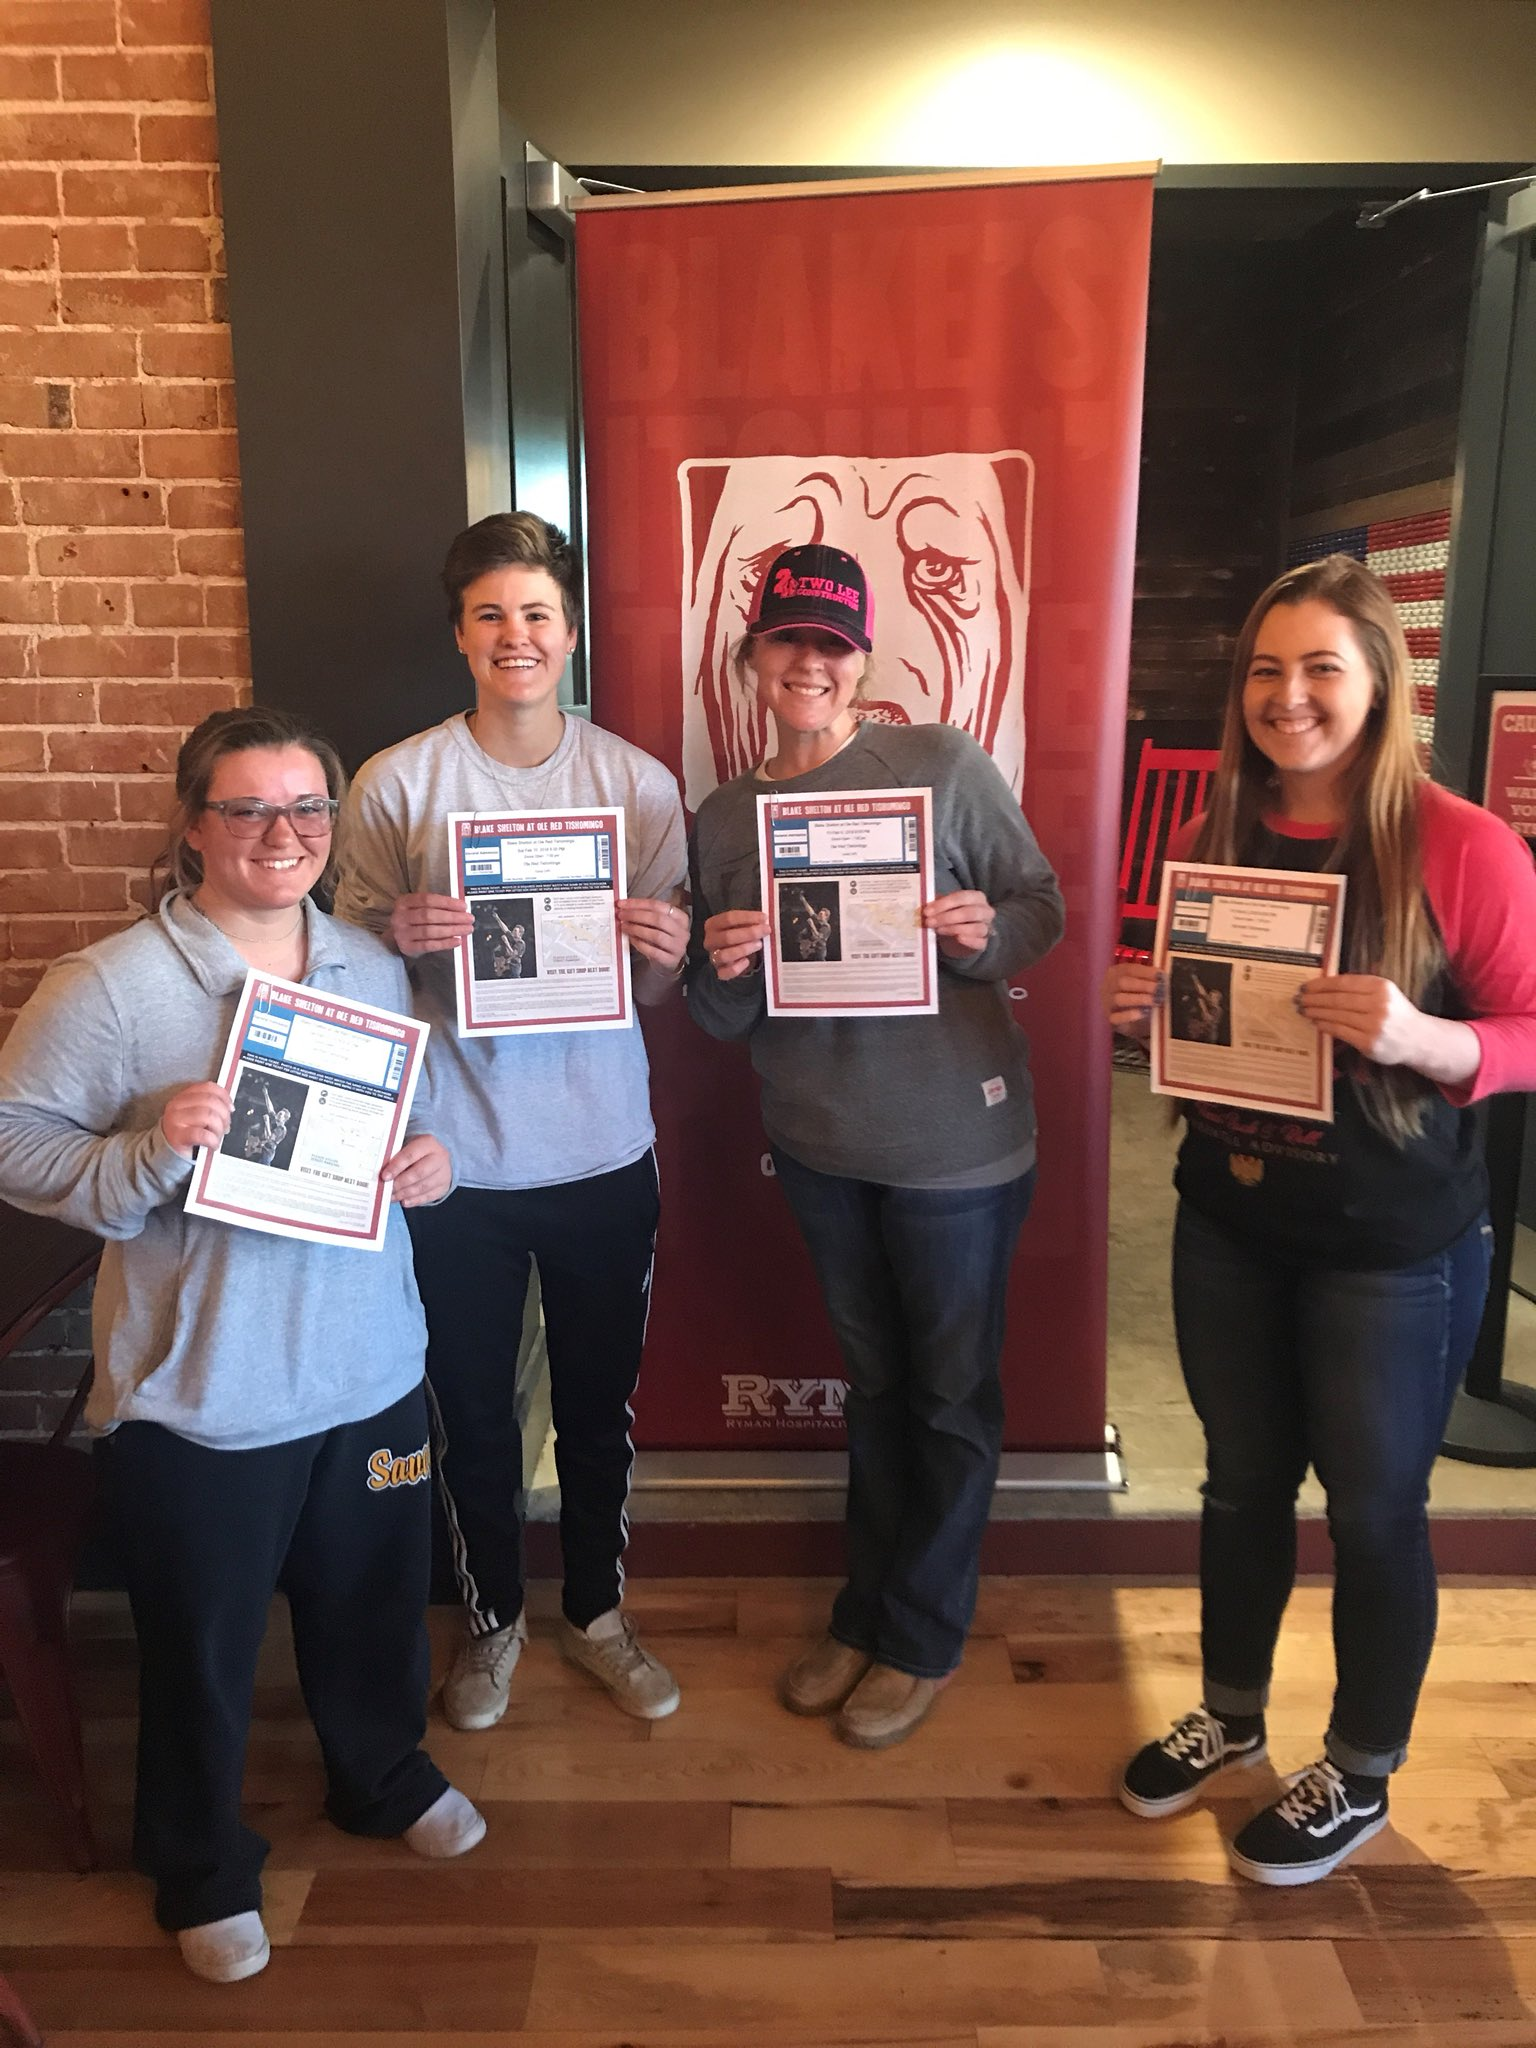 Winner winner!! Congrats y'all! See ya back at Ole Red! Thanks to everyone to joined the scavenger hunt! - Team BS https://t.co/PaQ5CrVQsj